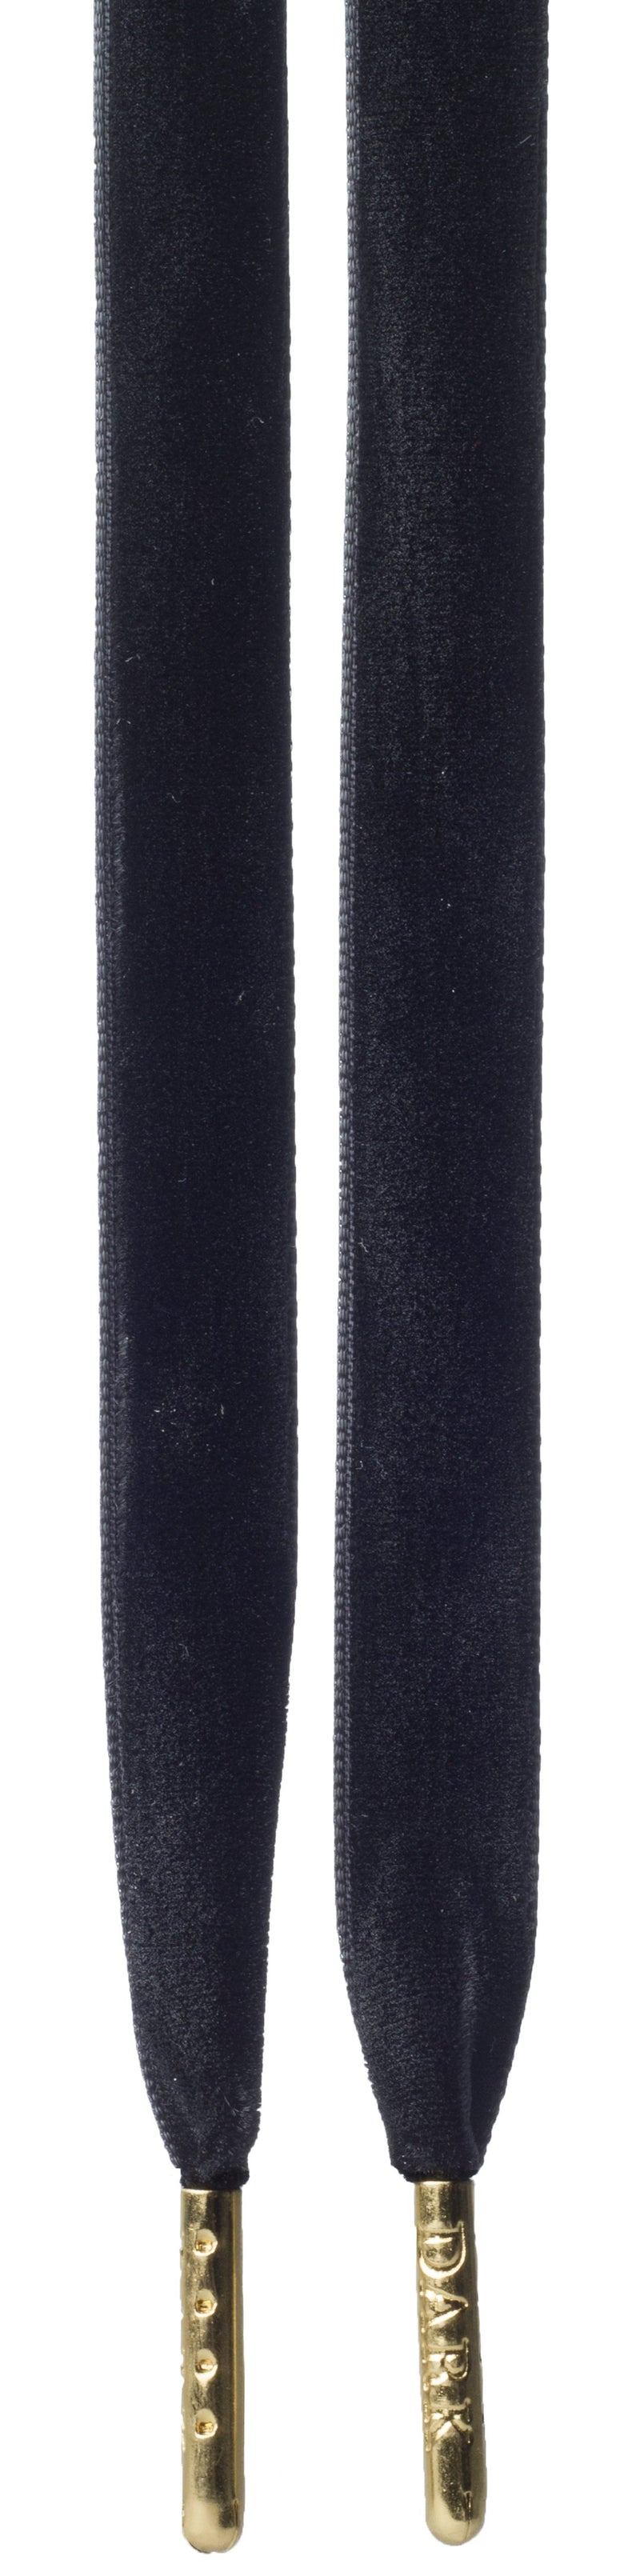 VELVET SHOE LACES BLACK